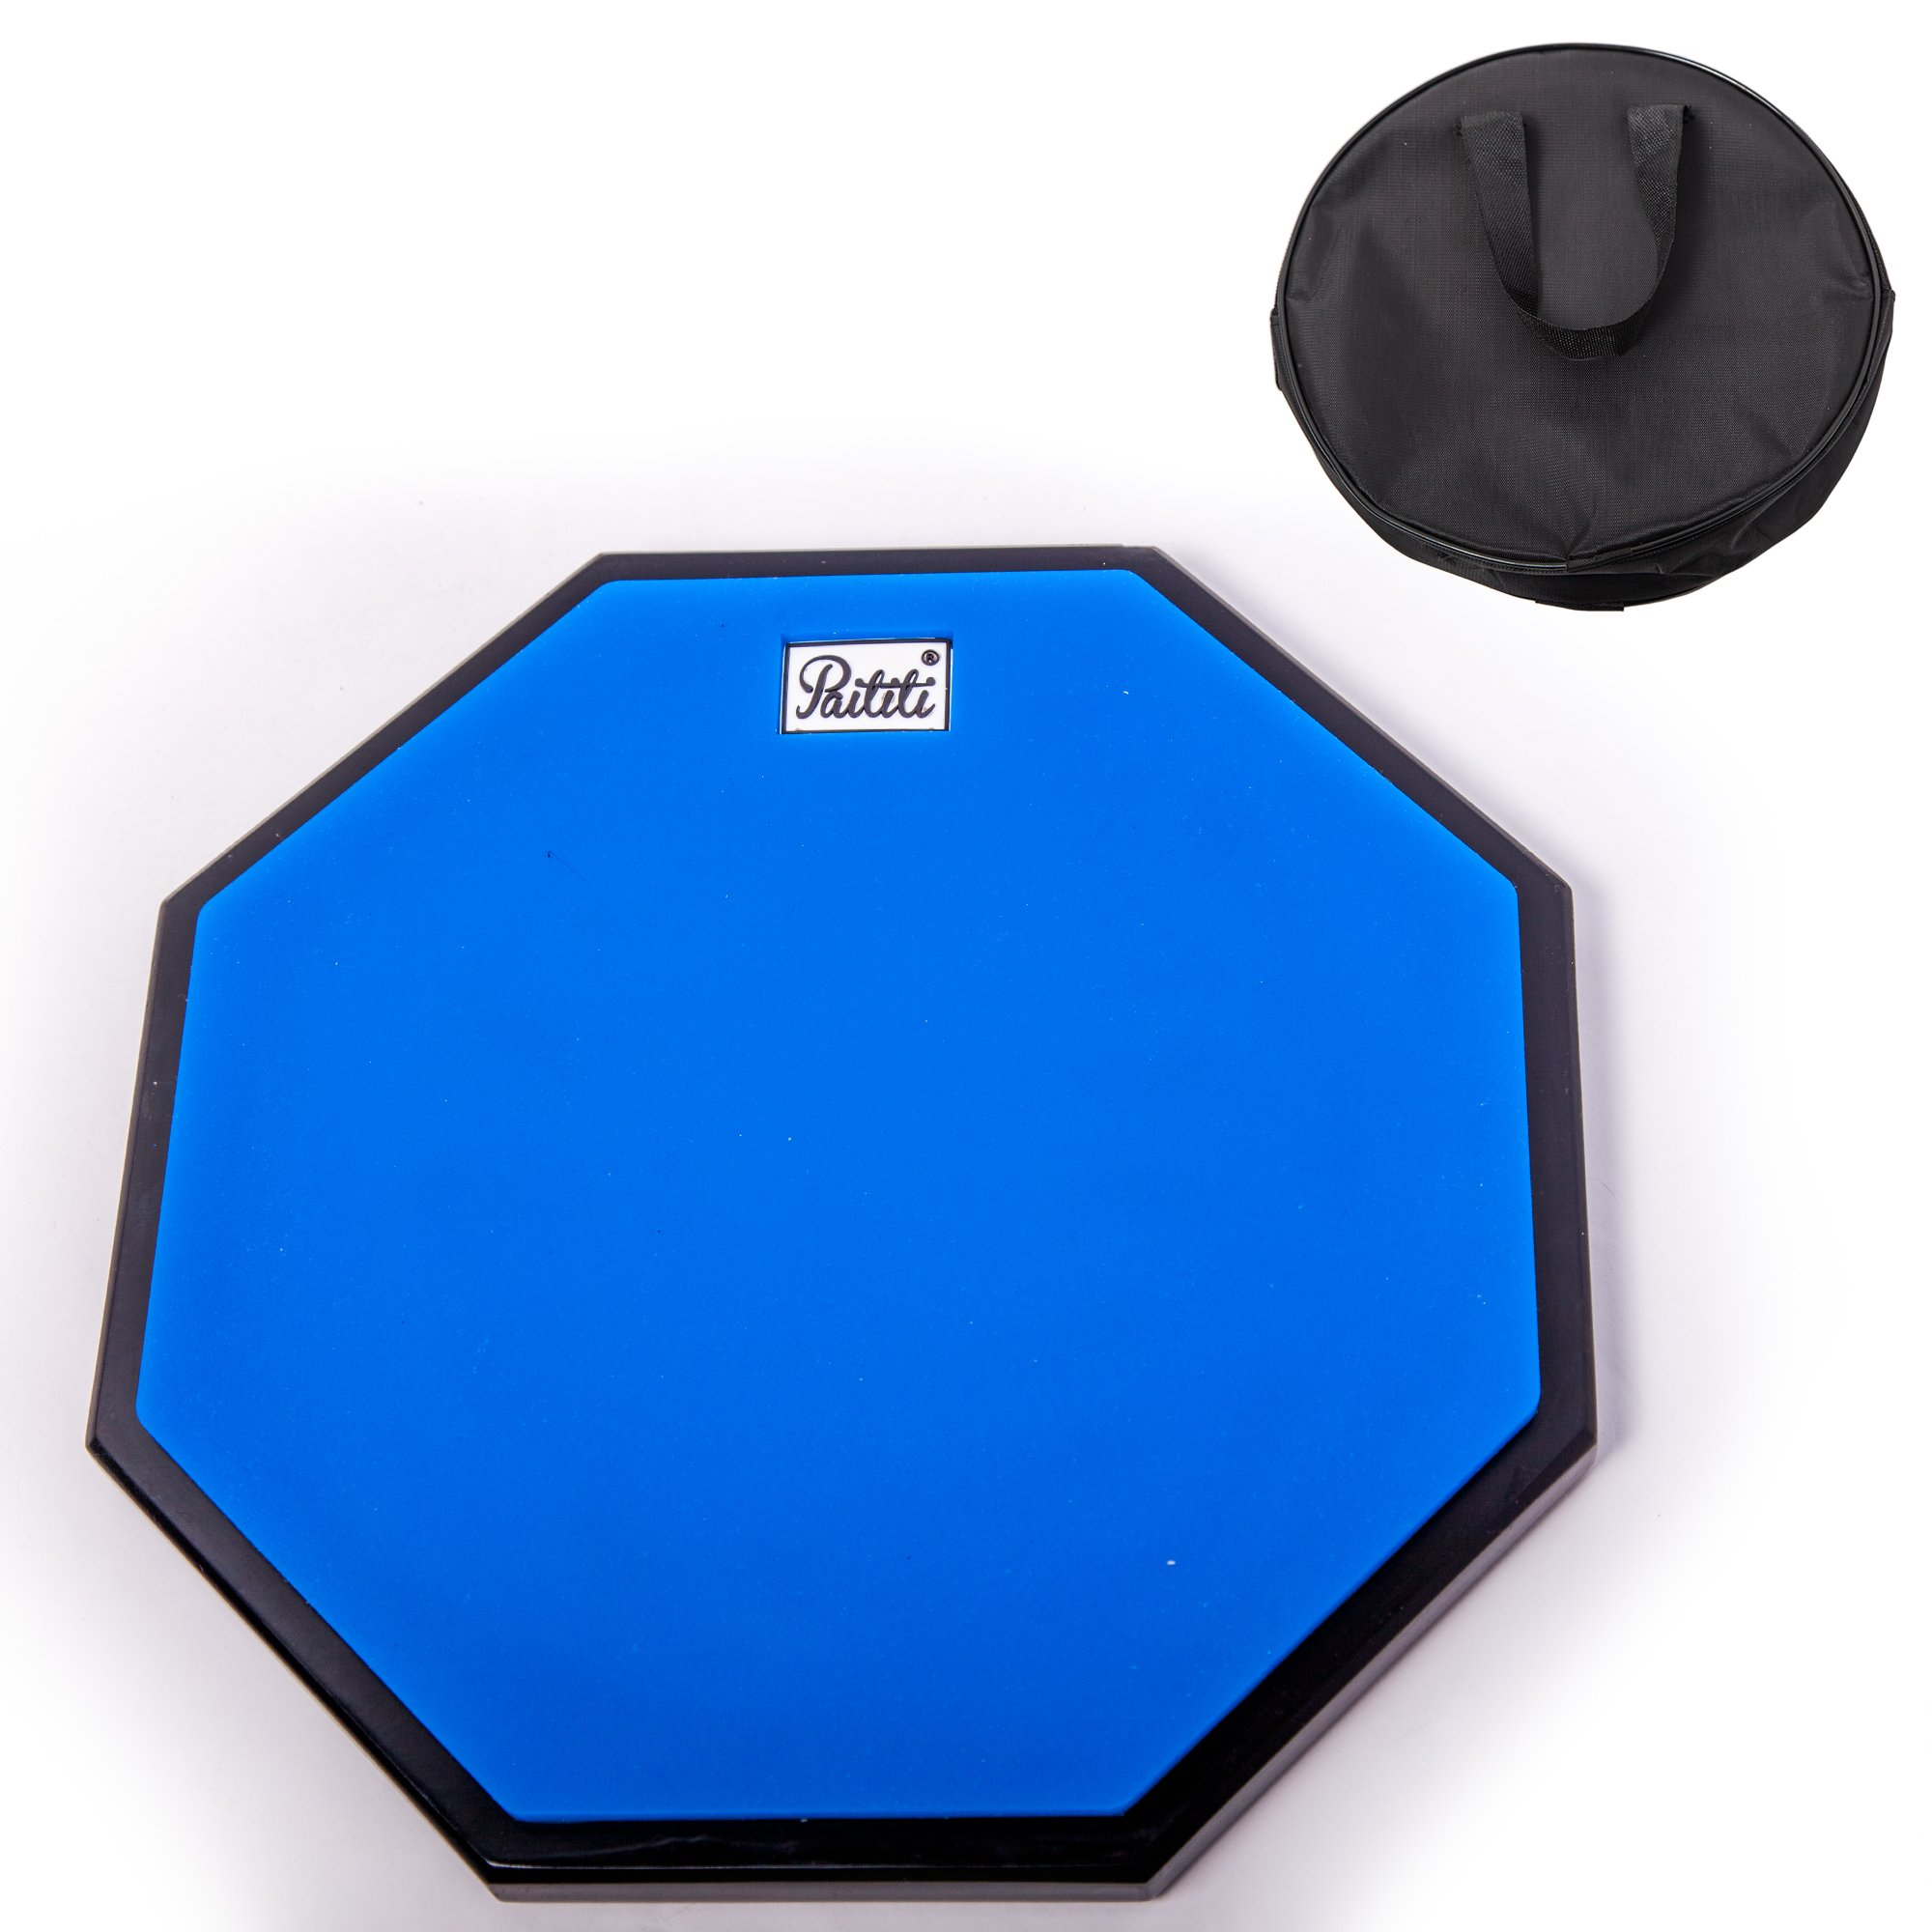 PAITITI 10 Inch Silent Portable Practice Drum Pad Octagonal Shape with Carrying Bag Blue Color by Paititi